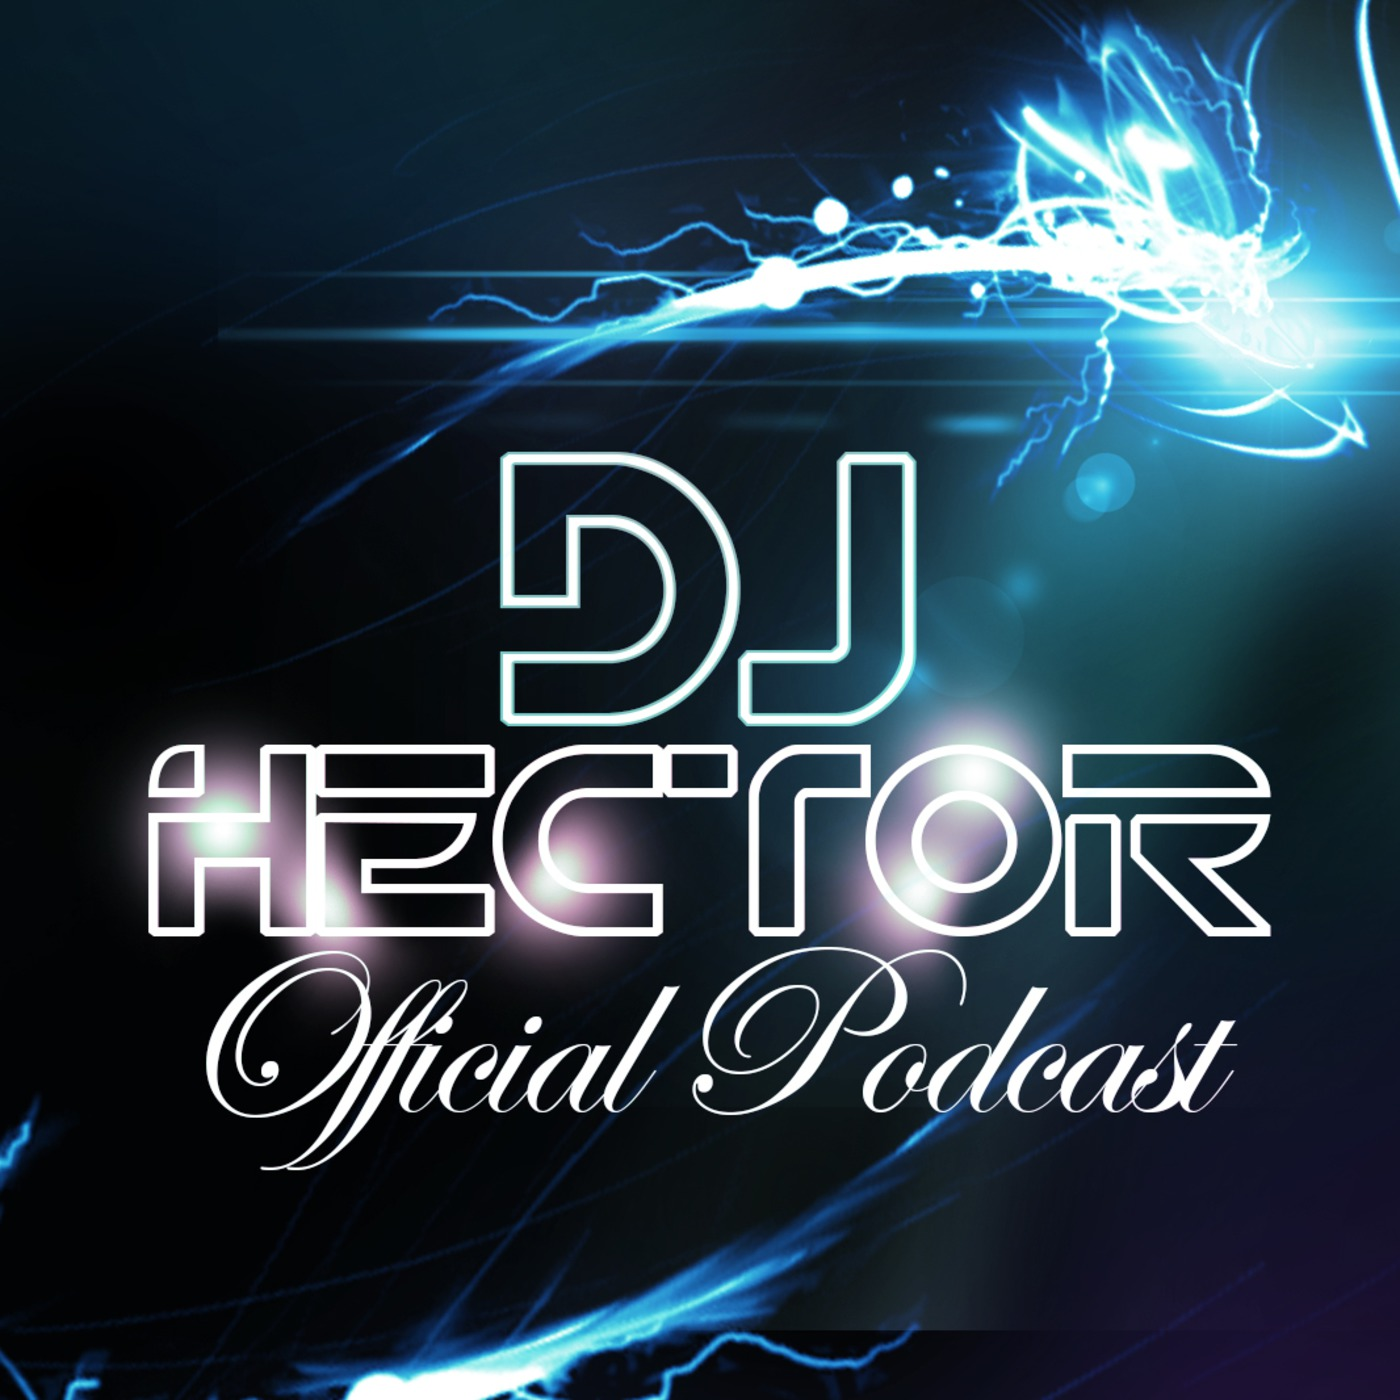 DJ Hector Official Podcast